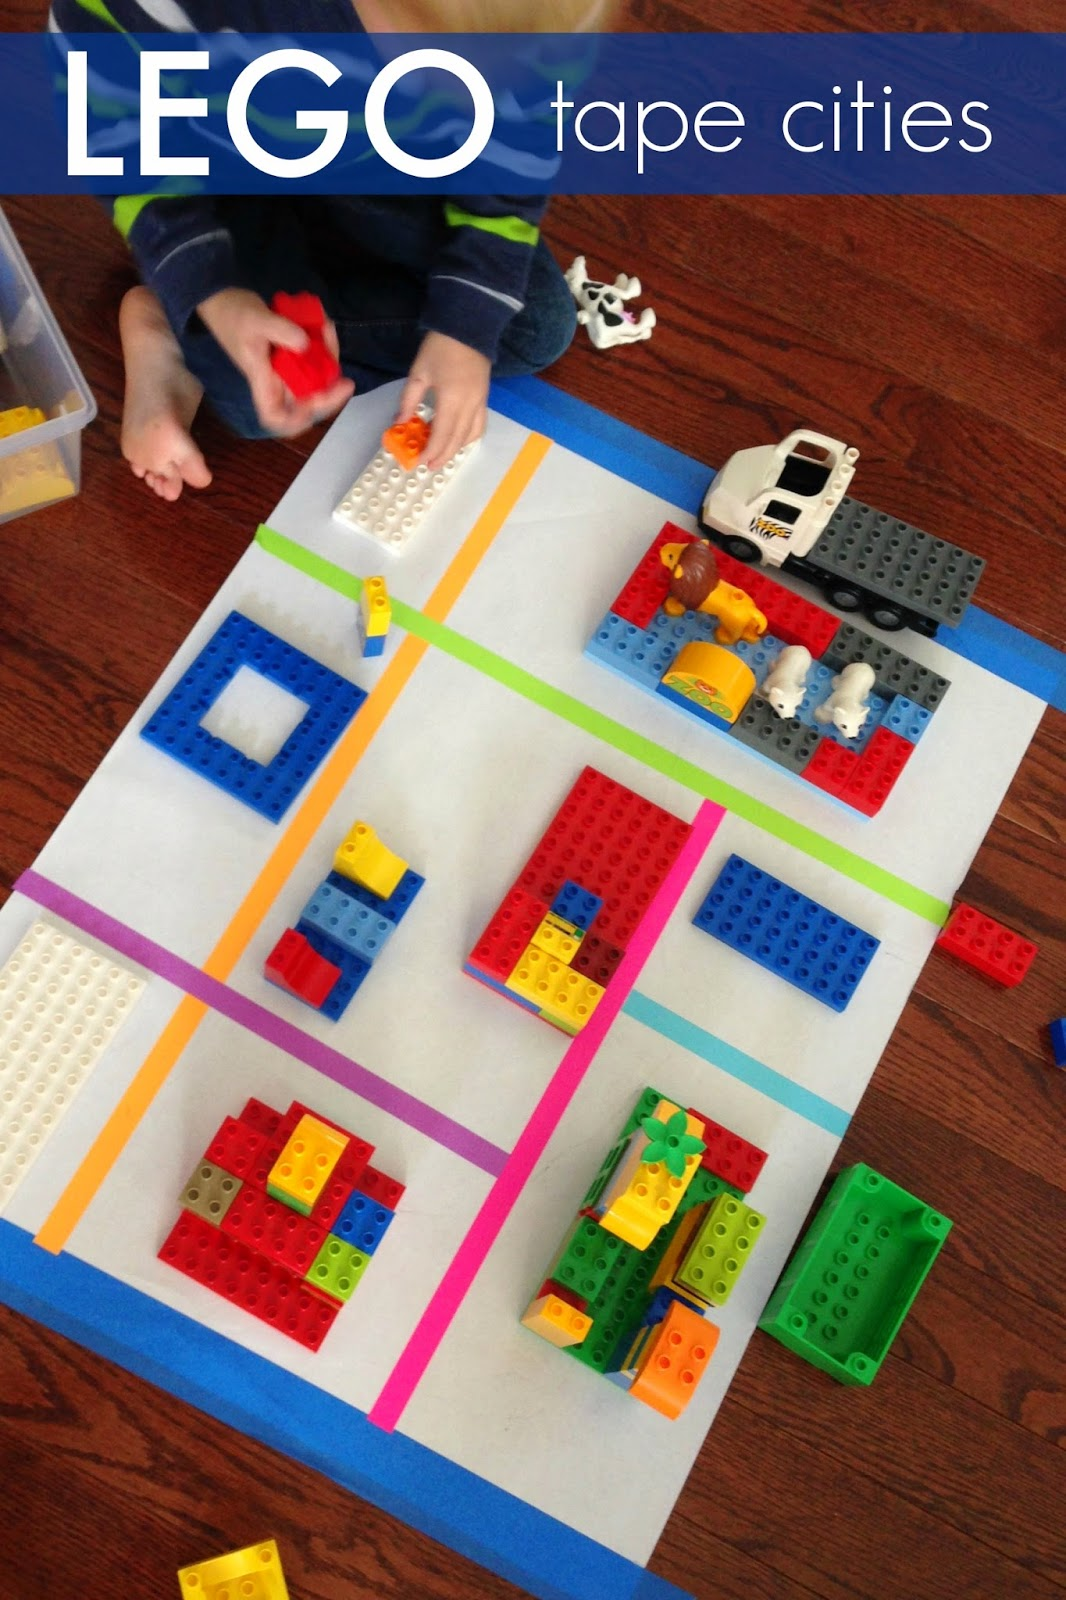 Toddler Approved Tape Cities With Lego